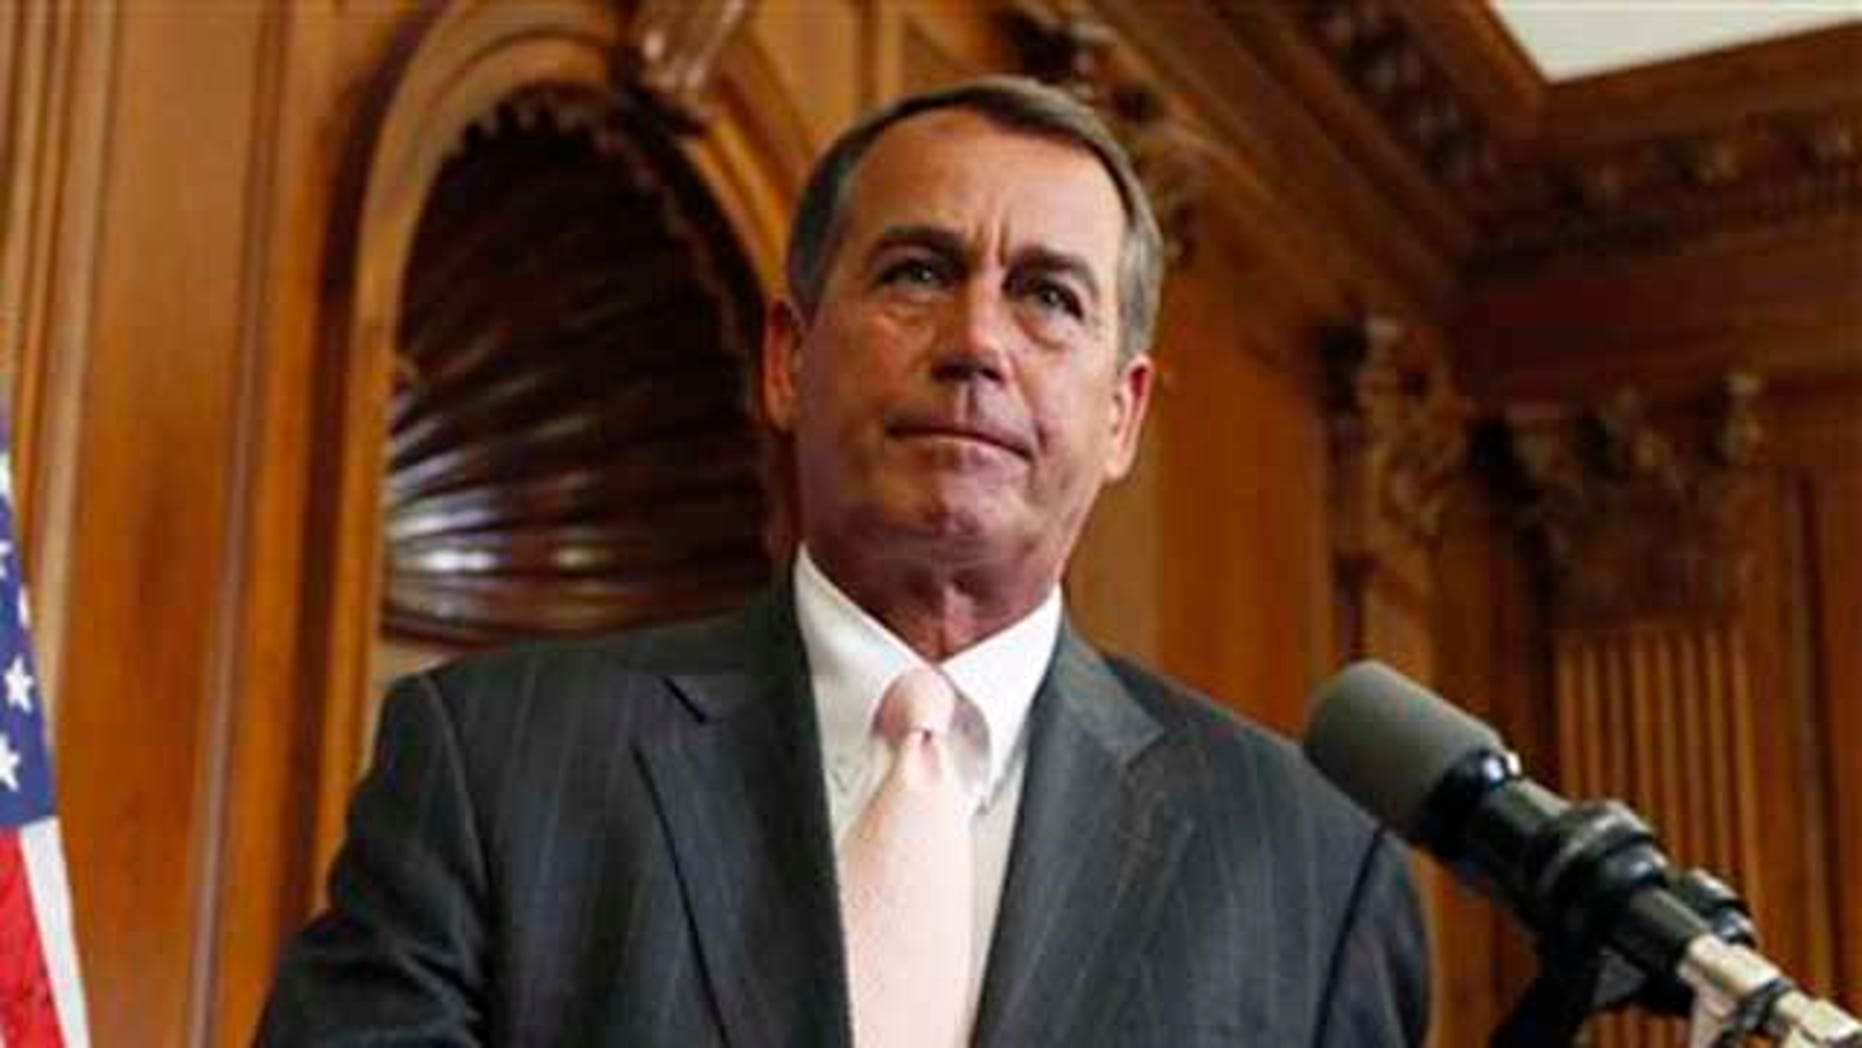 June 16, 2010: House Minority John Boehner, R-Ohio, participates in a ceremony on Capitol Hill in Washington. Boehner recently came under scrutiny for his financial relationship with lobbyists. (AP).